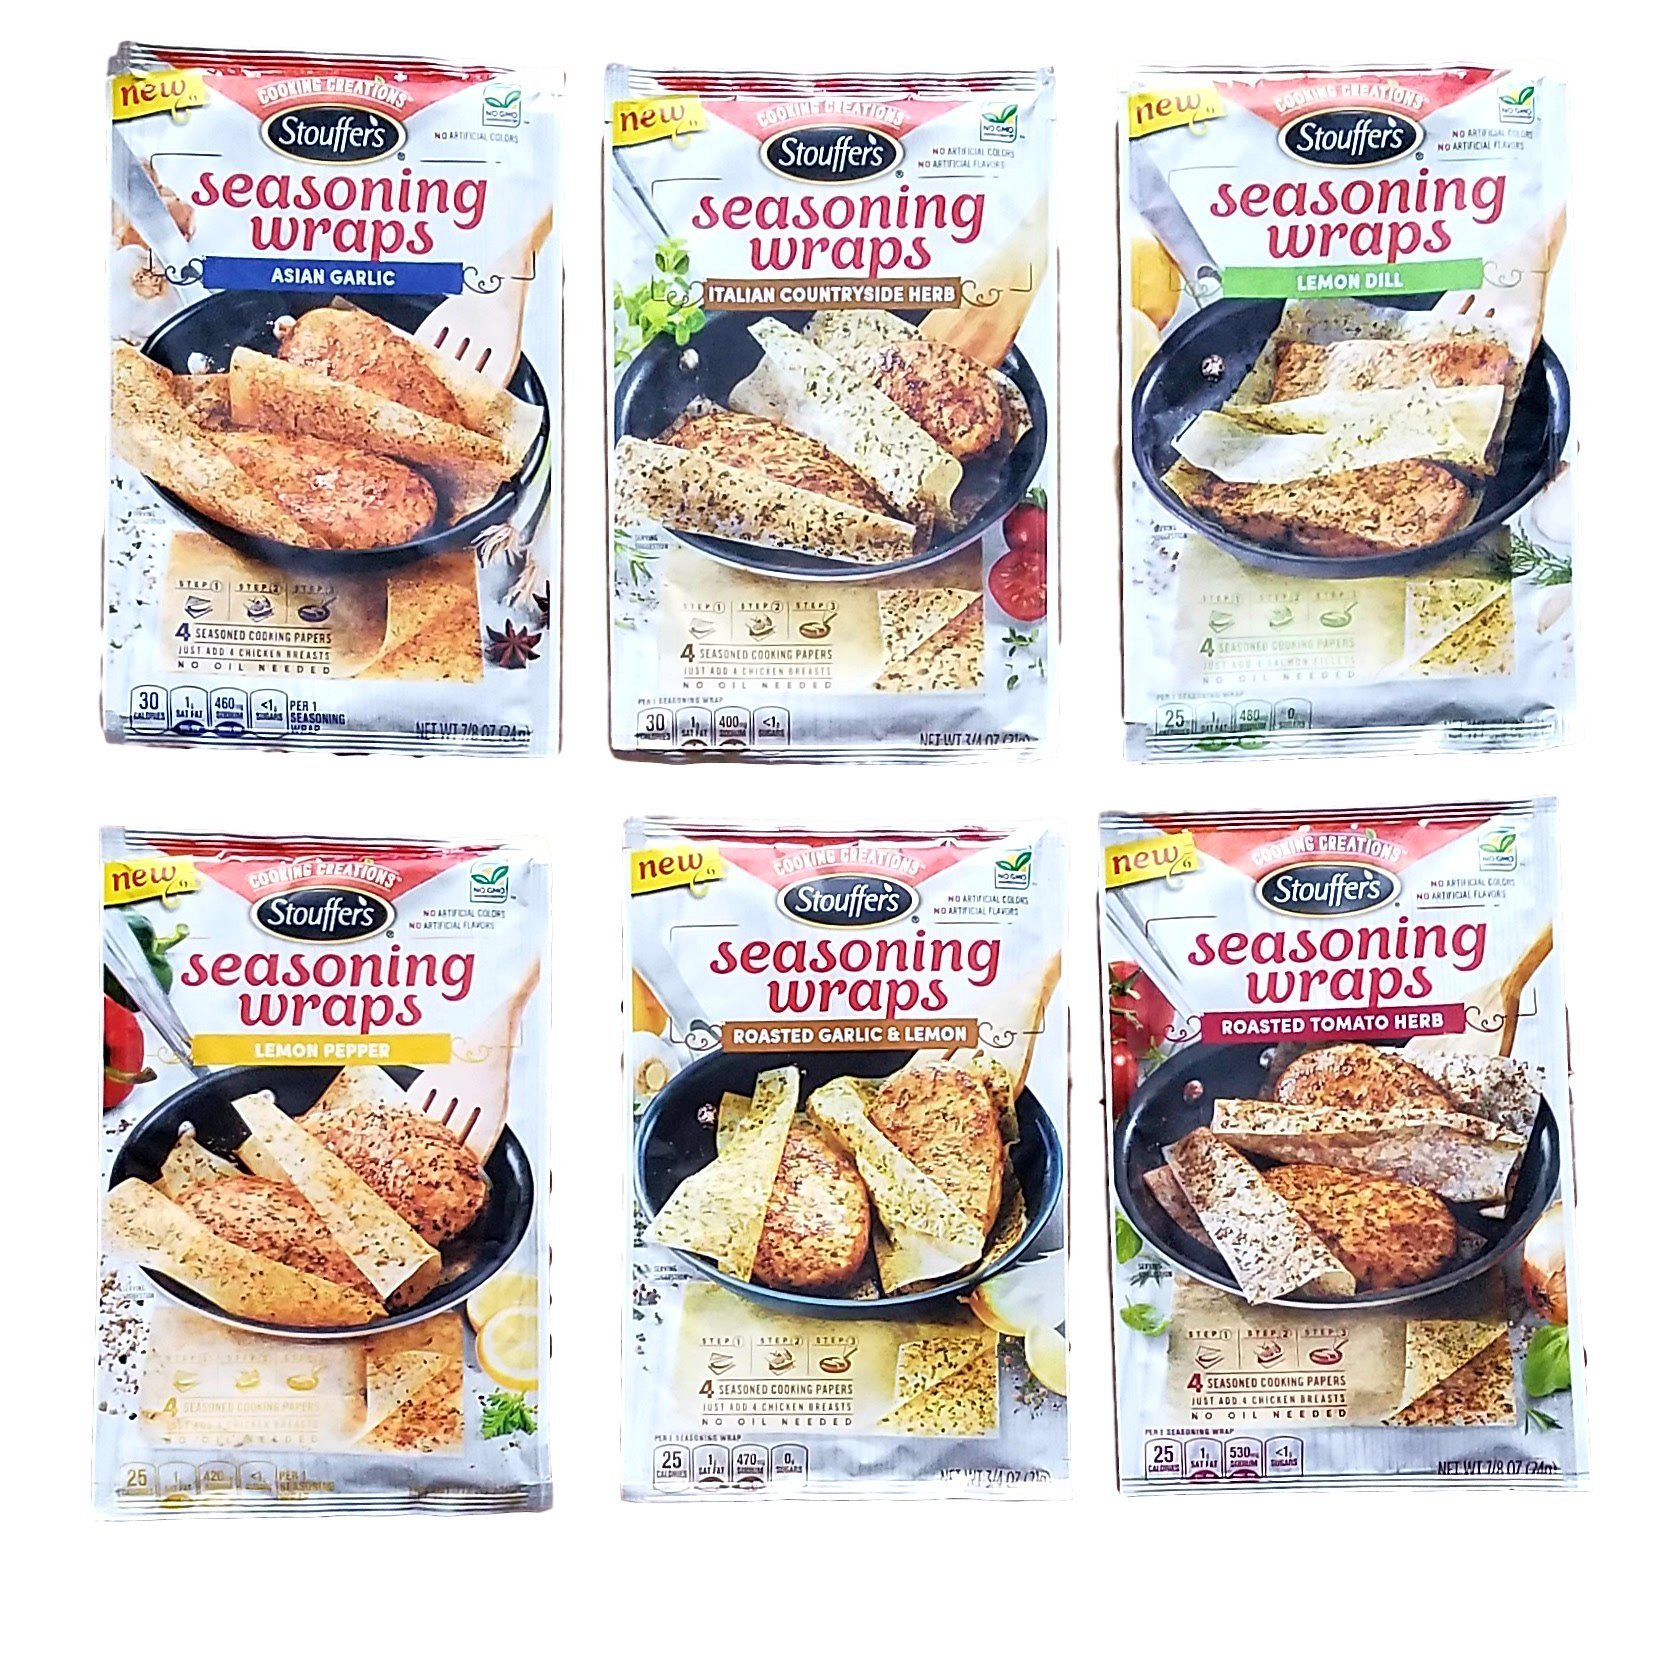 Variety Pack of 6 - Asian Garlic, Italian Countryside Herb, Lemon Dill, Lemon Pepper, Roasted Garlic & Lemon, Roasted Tomato Herb - Stouffer's Cooking Creations Seasoning Wraps Bundle